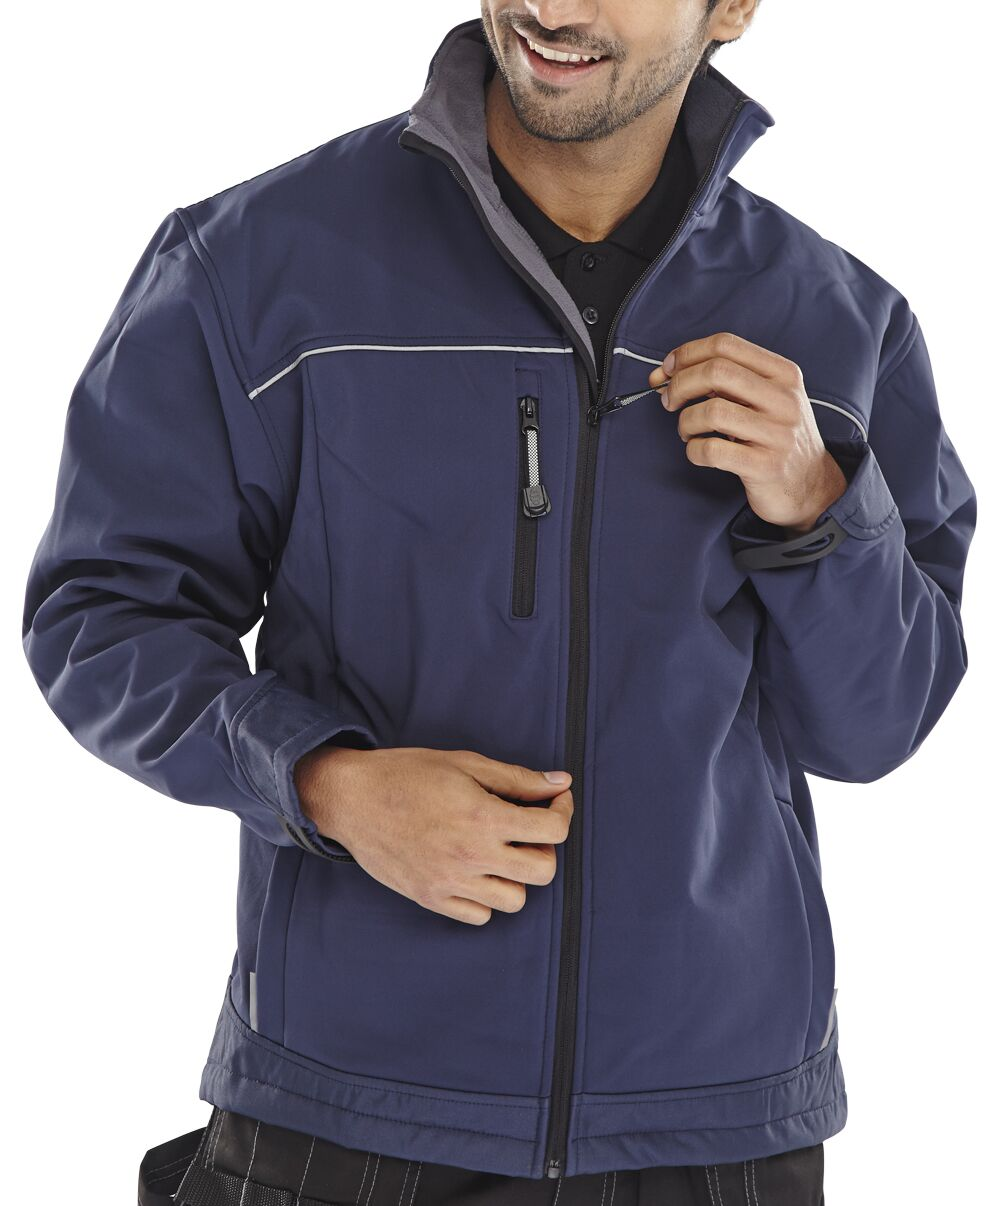 Soft Shell Click Workwear Soft Shell Jacket Water Resistant Windproof Small Navy Ref SSJNS *Approx 3 Day Leadtime*